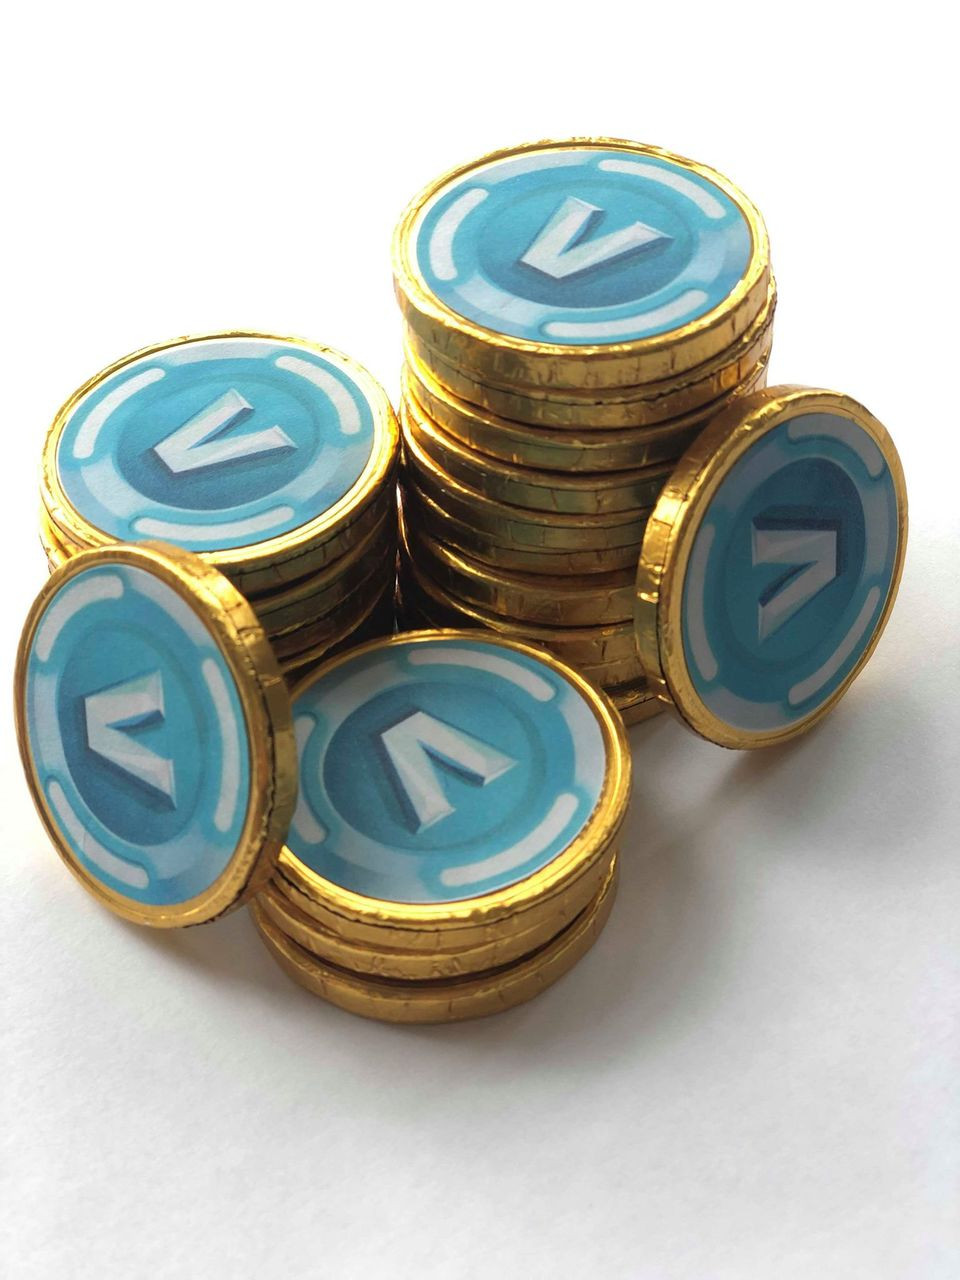 20 Fortnite Inspired V Bucks Chocolate Coins Loose Coins Are 4cm